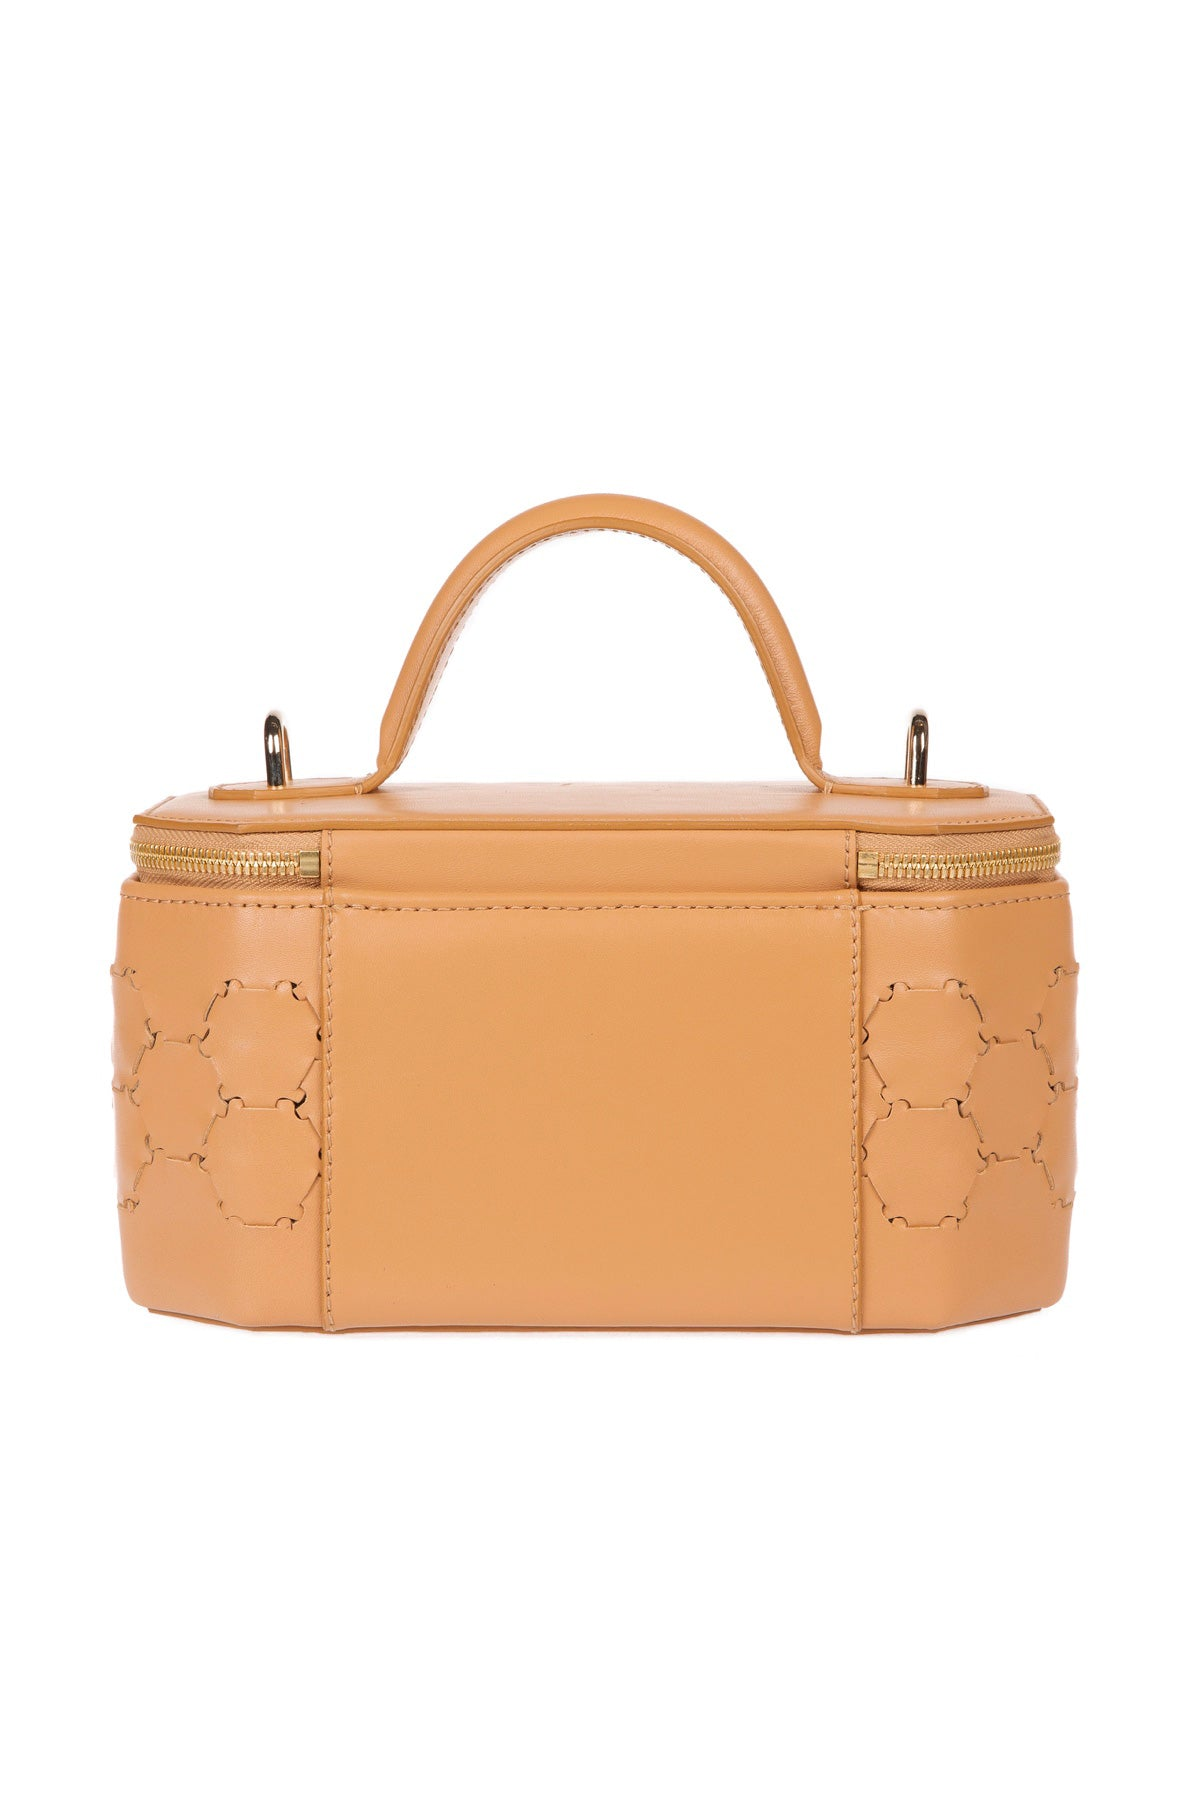 S A F I Y E | Jewellery Bag Camel